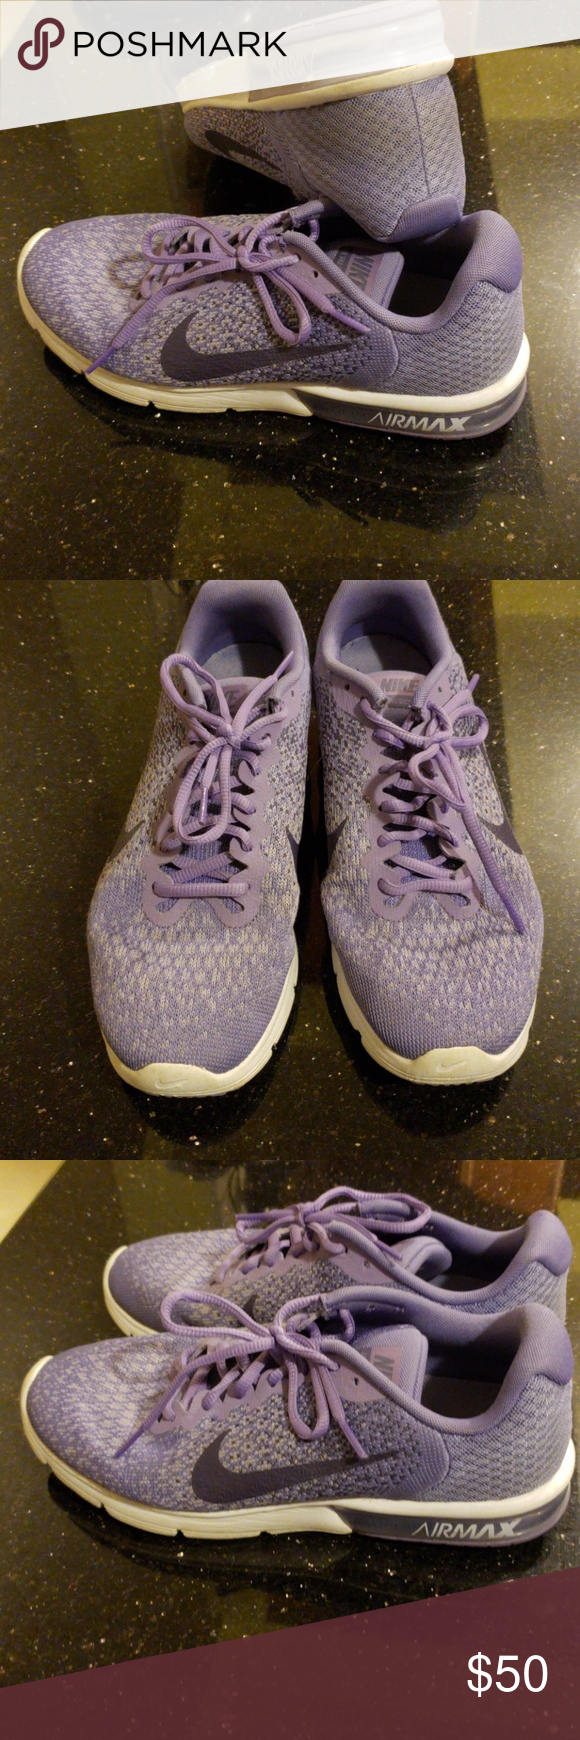 8872bf9df44fa9 BARELY WORN womens nike air max sequent 2 Barely worn womens nike air max  sequent 2 running shoes. Purple sneakers with purple swoosh and purple  laces.